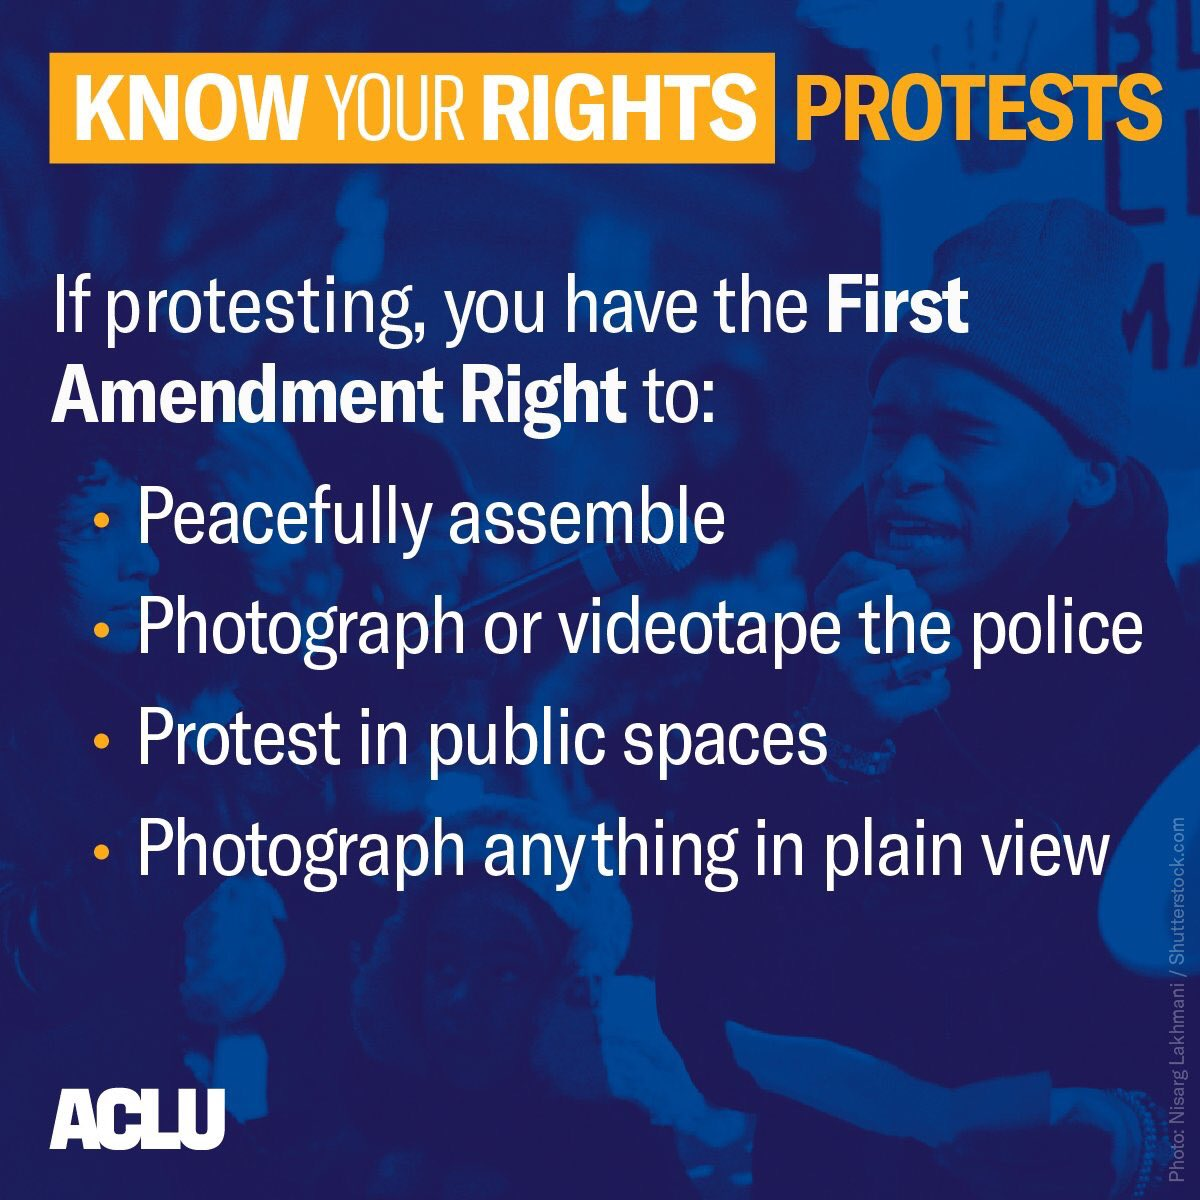 Dissent is patriotic. If you're protesting today, know your rights. #MarchForOurLives